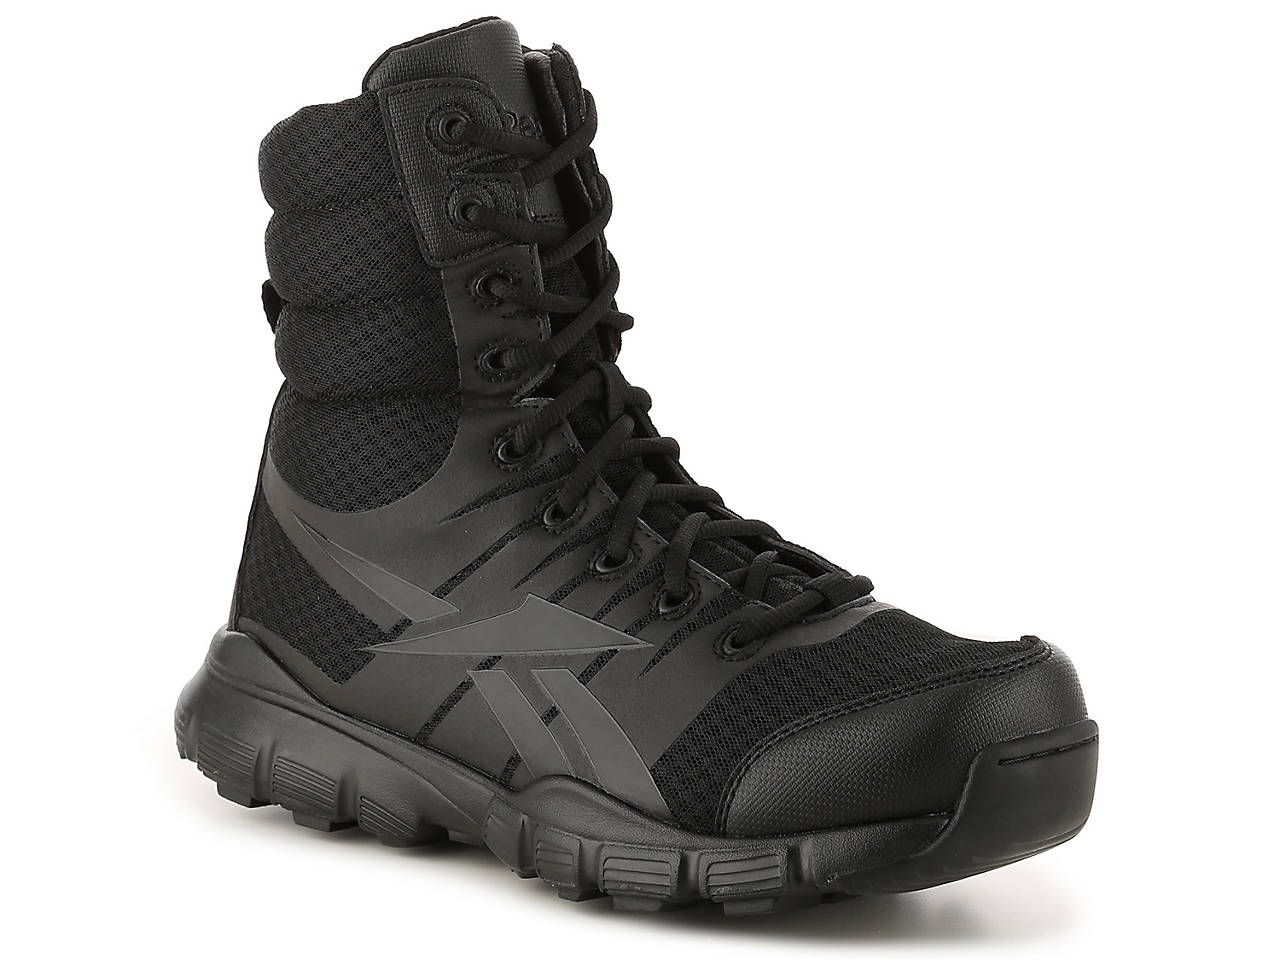 low priced 85b0c af23c Dauntless Ultra Light Work Boot